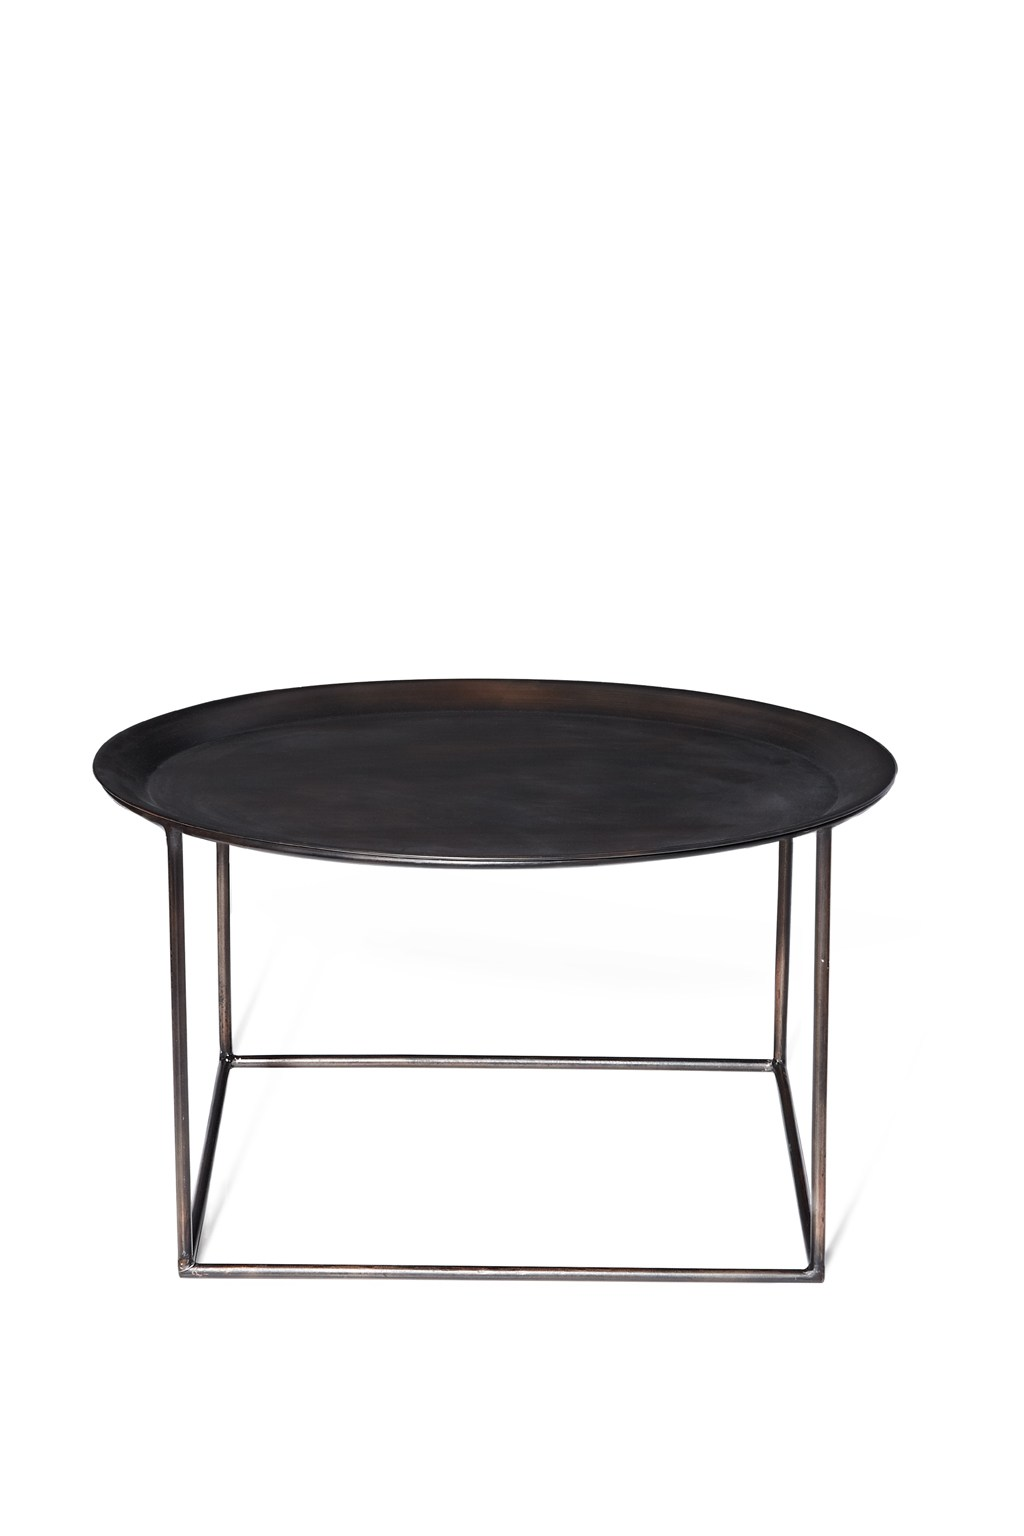 round steel coffee table  home old season  french connection - round steel coffee table loading images